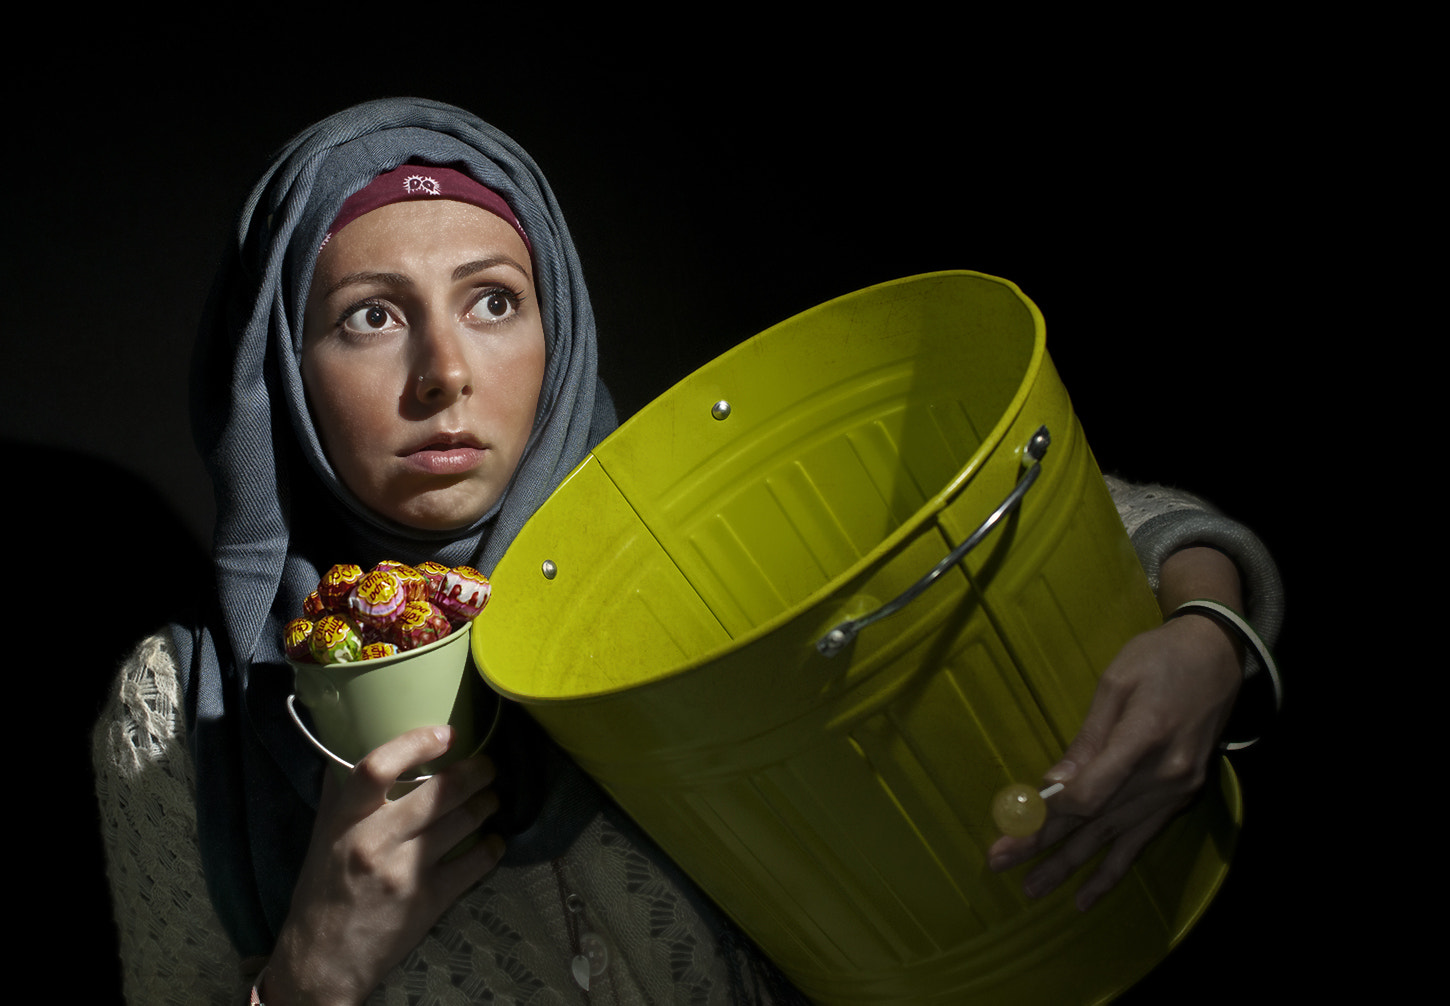 Photograph Bucket Girl by Sydney Lobo on 500px